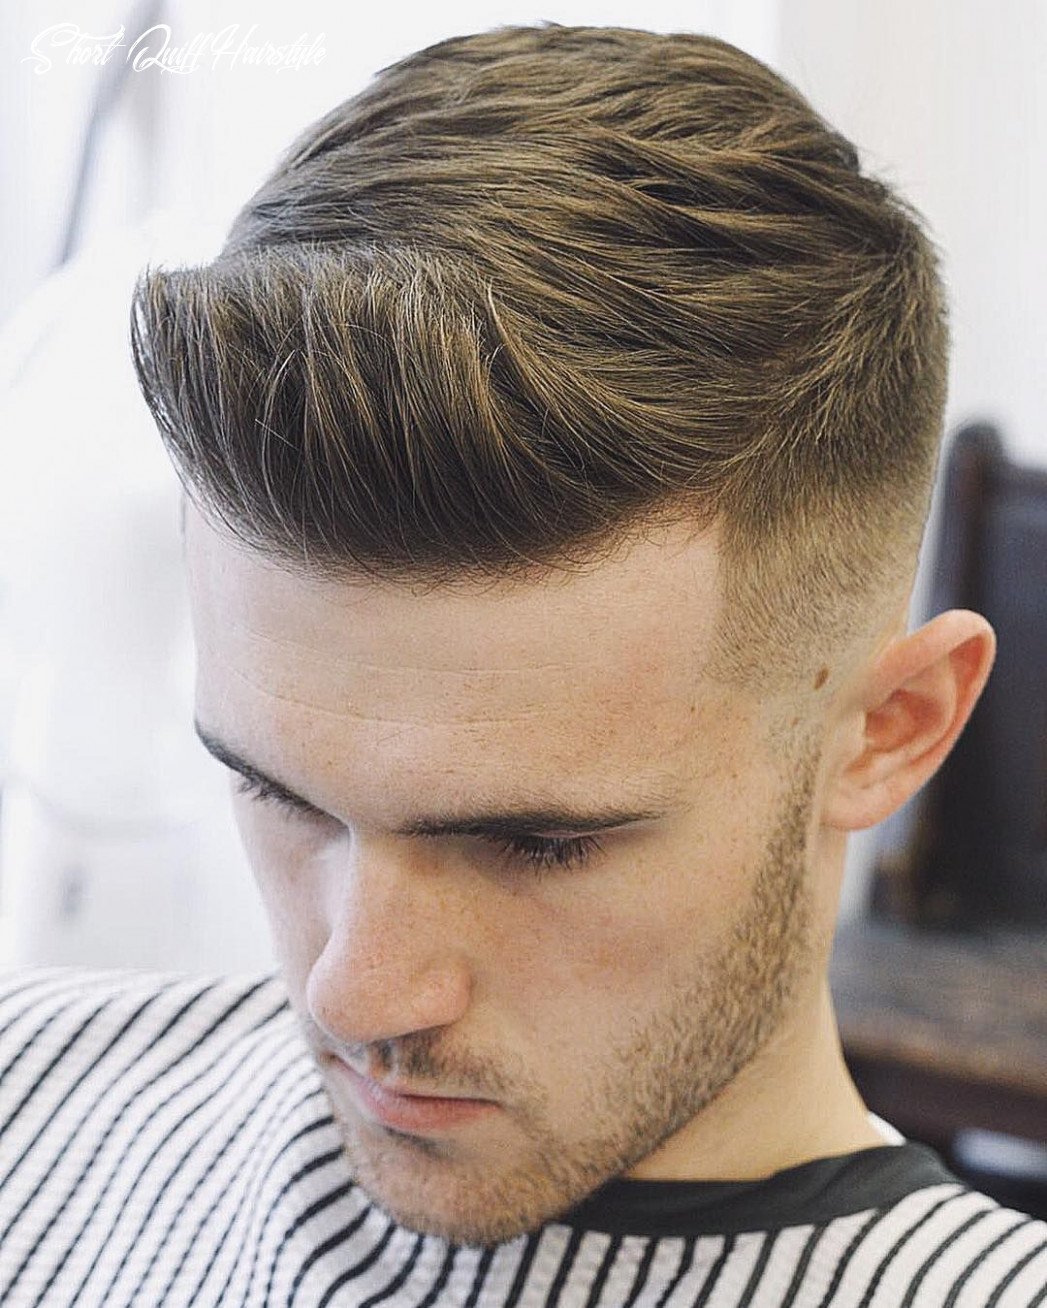 11 new hairstyles for men (11 update)   mens hairstyles short